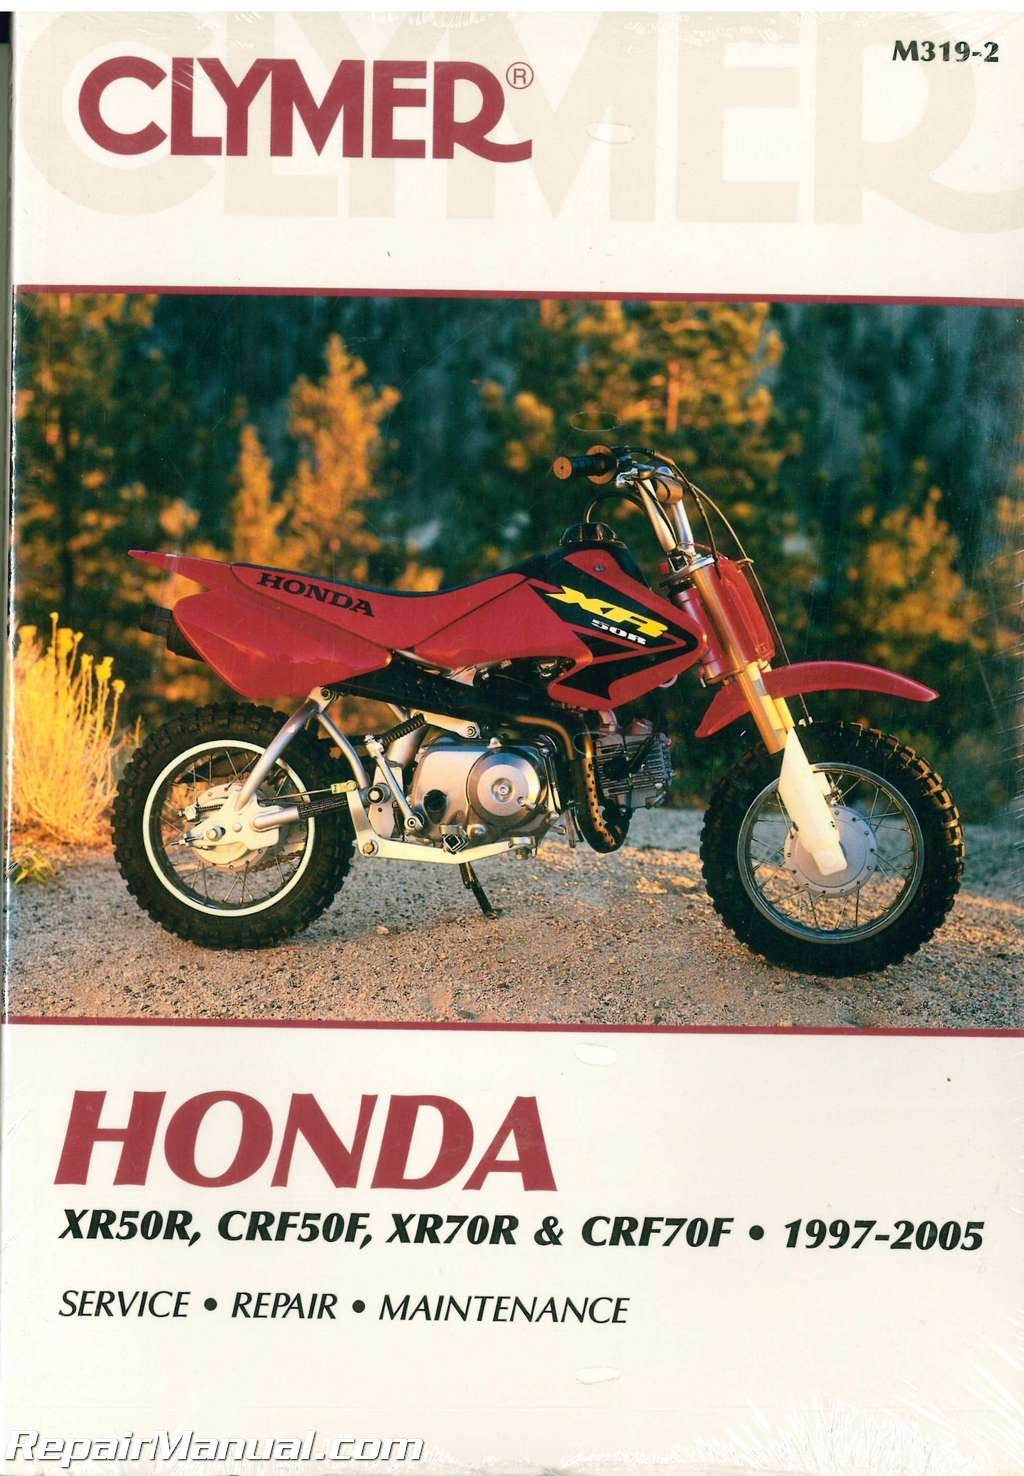 honda-xr50r-crf50f-xr70r-and-crf70f-1997-2005-